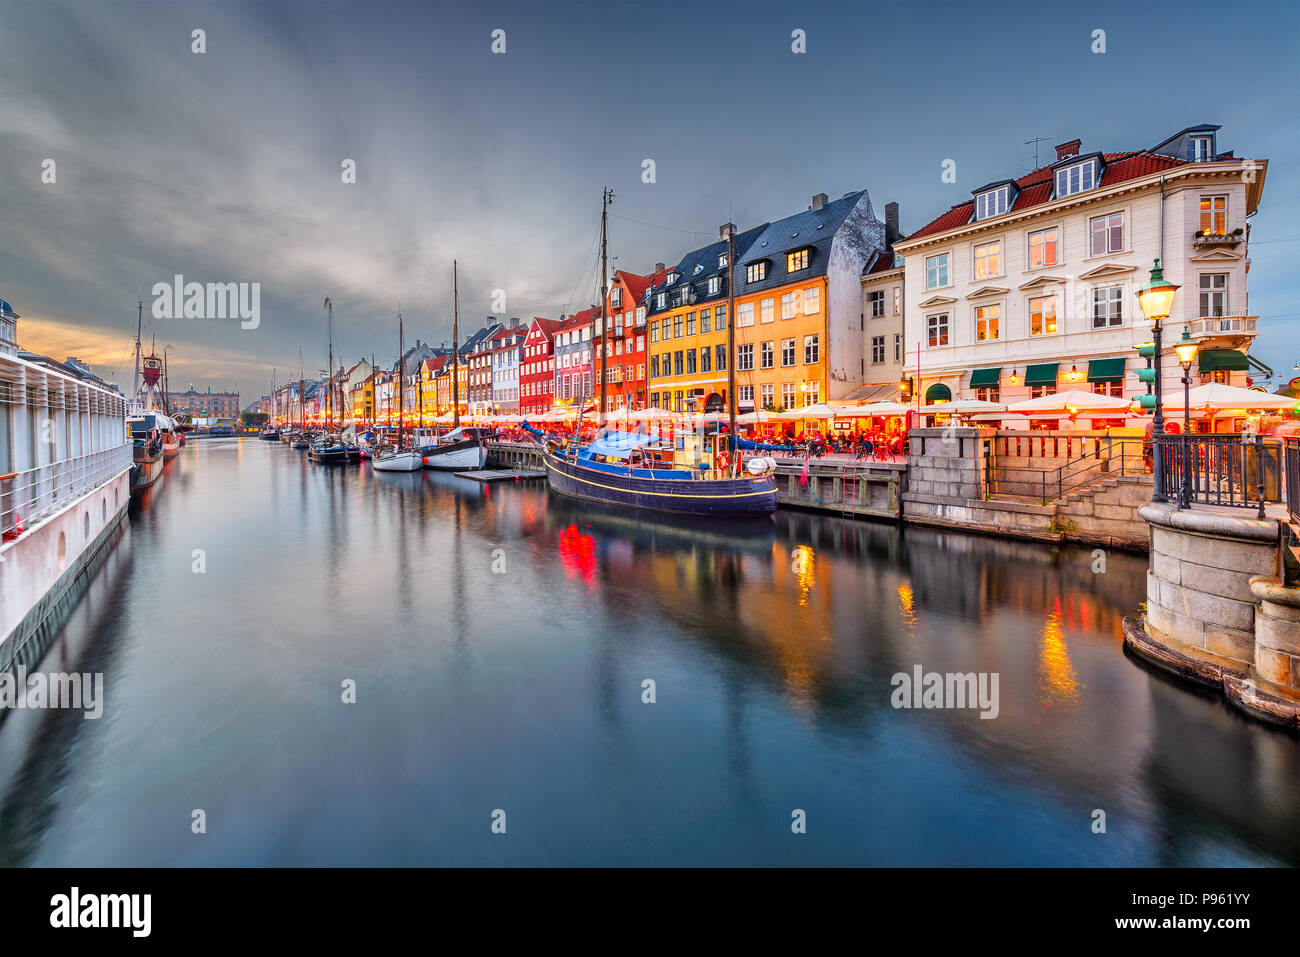 Copenhagen, Denmark on the Nyhavn Canal. - Stock Image